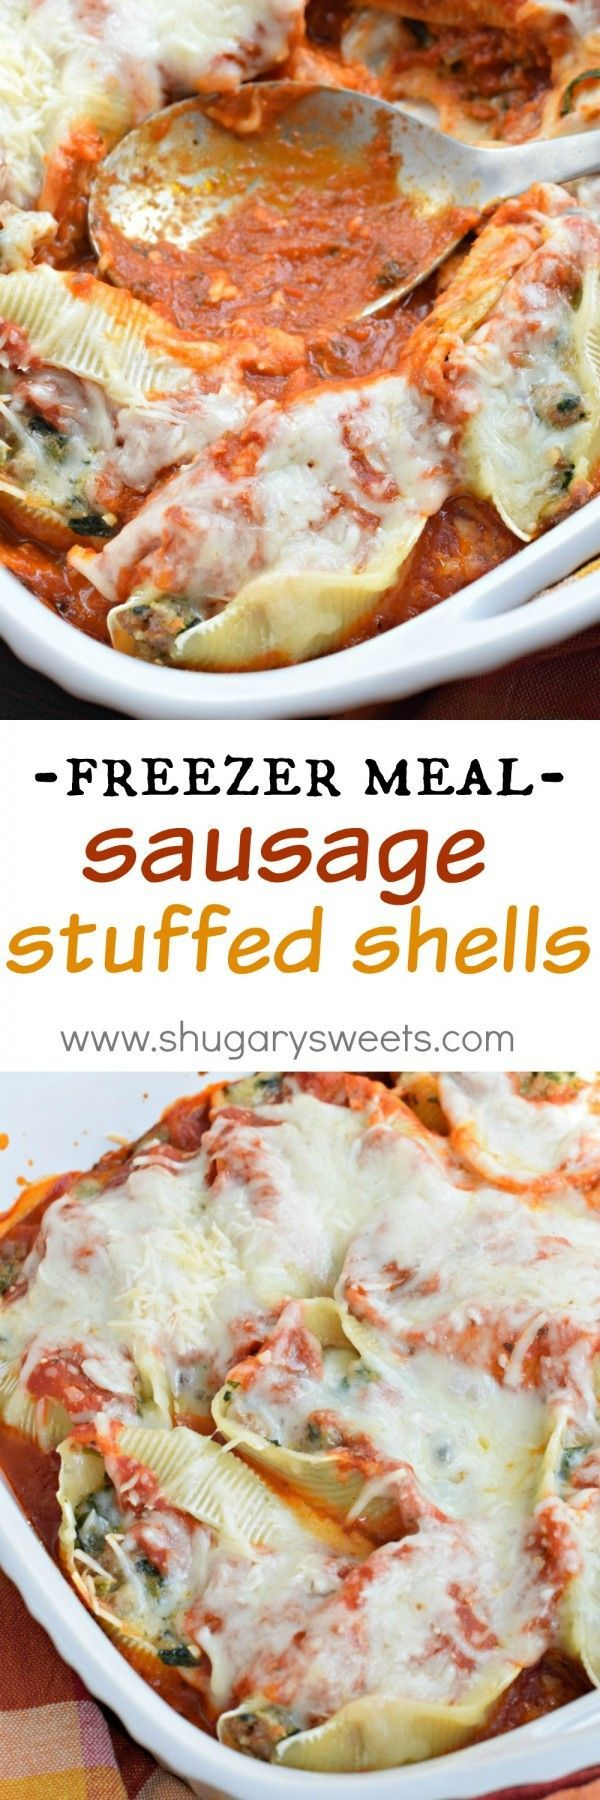 This Sausage Stuffed Shells recipe is delicious, easy and makes a great freezer meal for a quick dinner for family and friends!